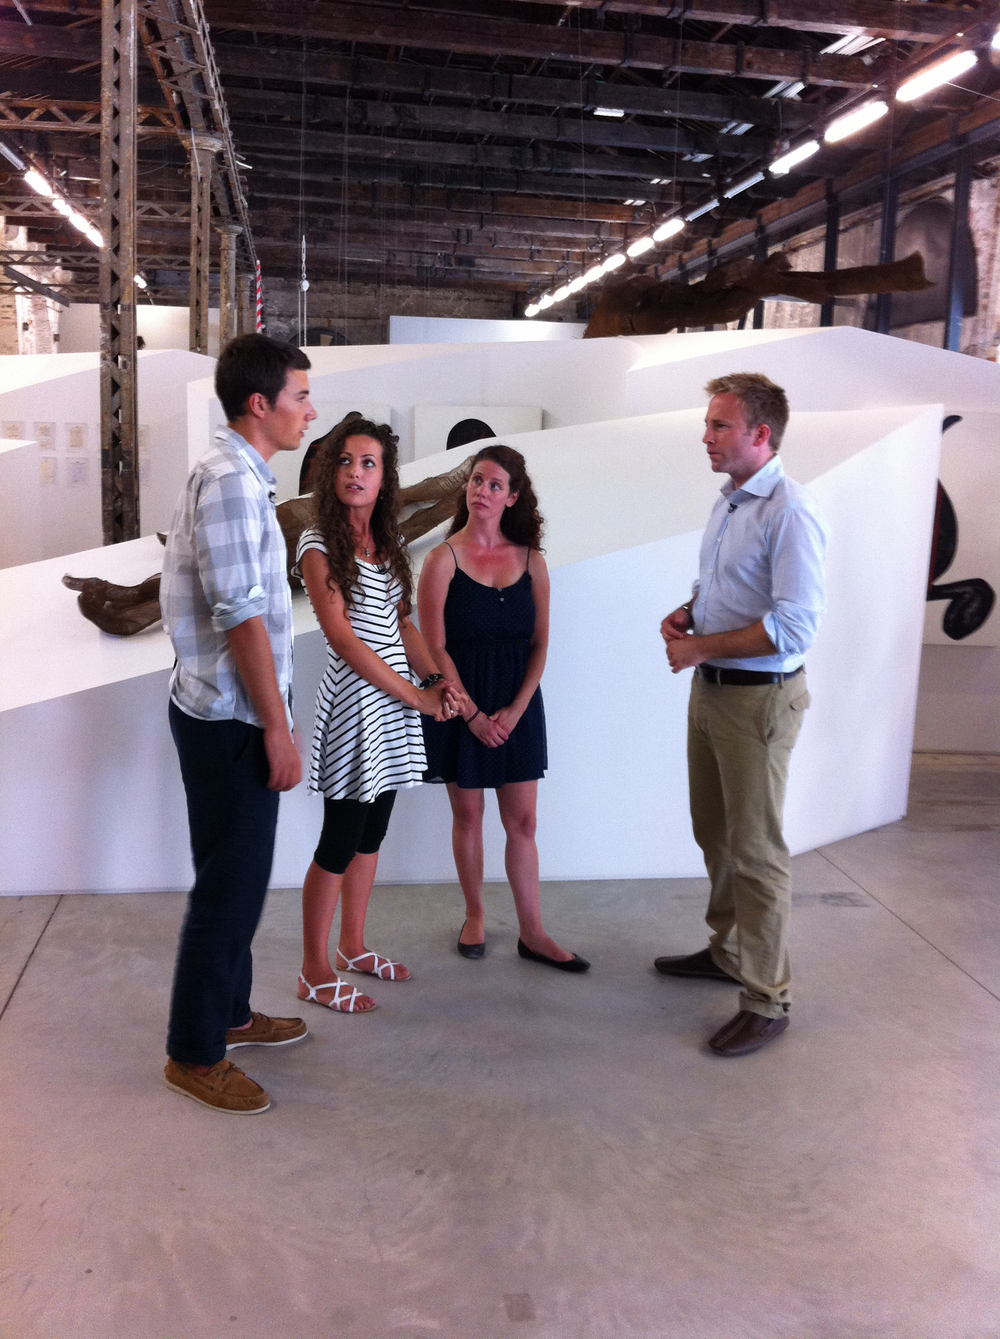 Art History Graduate Students Aurelia Moser, Jessica Kloville and Alex Watkins were interviewed by CBS reporter Seth Doane at the Arsenale during the Biennale (photo: Chris Wright).